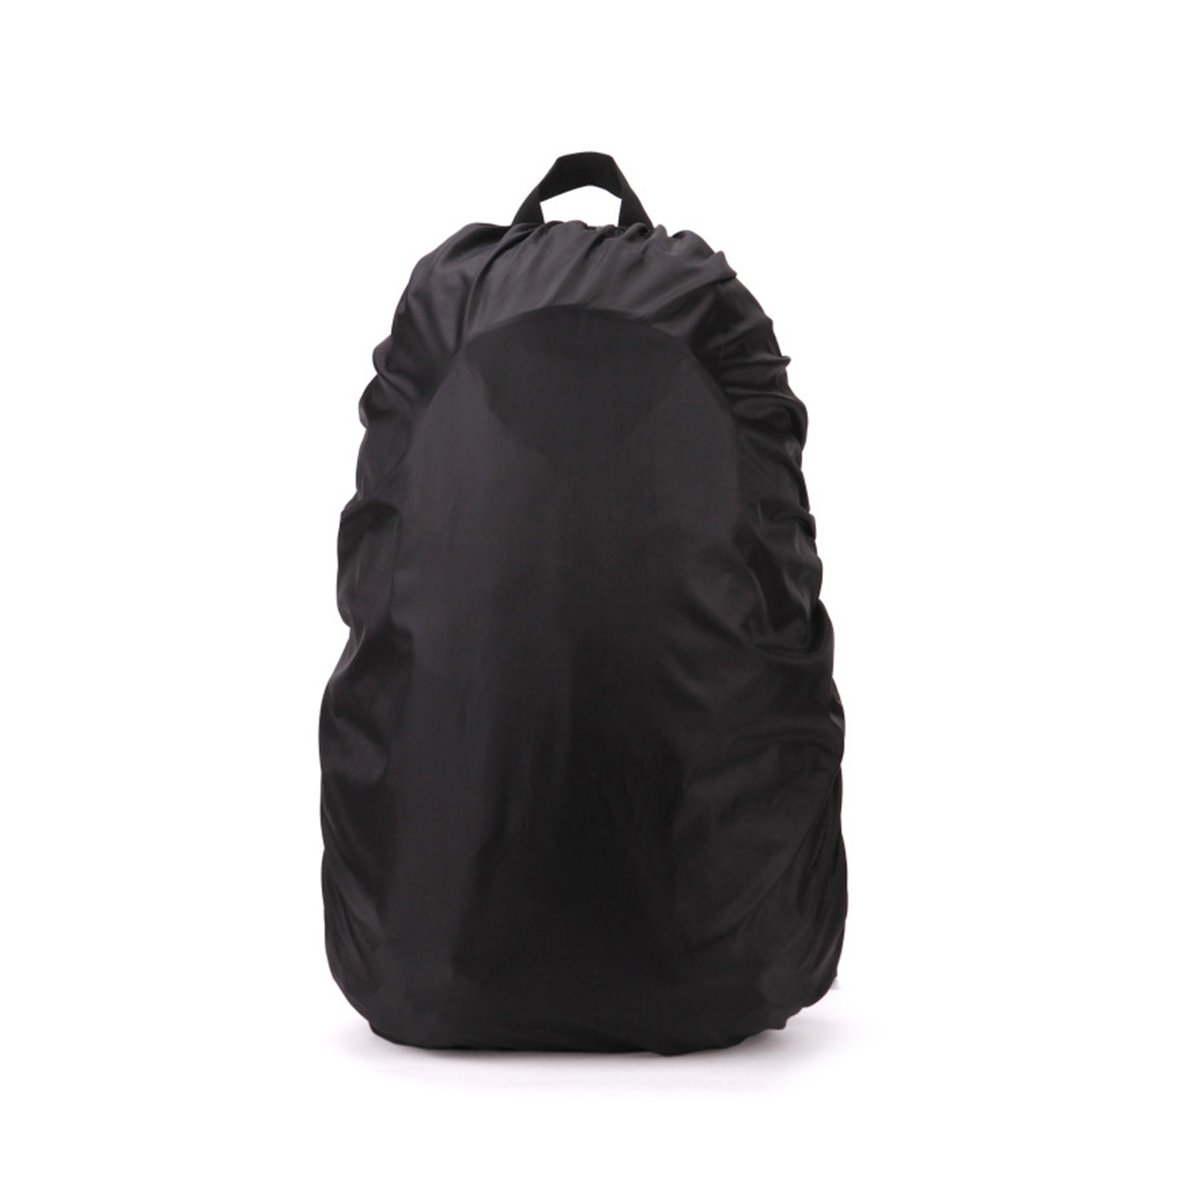 PIXNOR Nylon Waterproof Backpack Rain Cover for Hiking/Camping/Traveling/Outdoor Activities